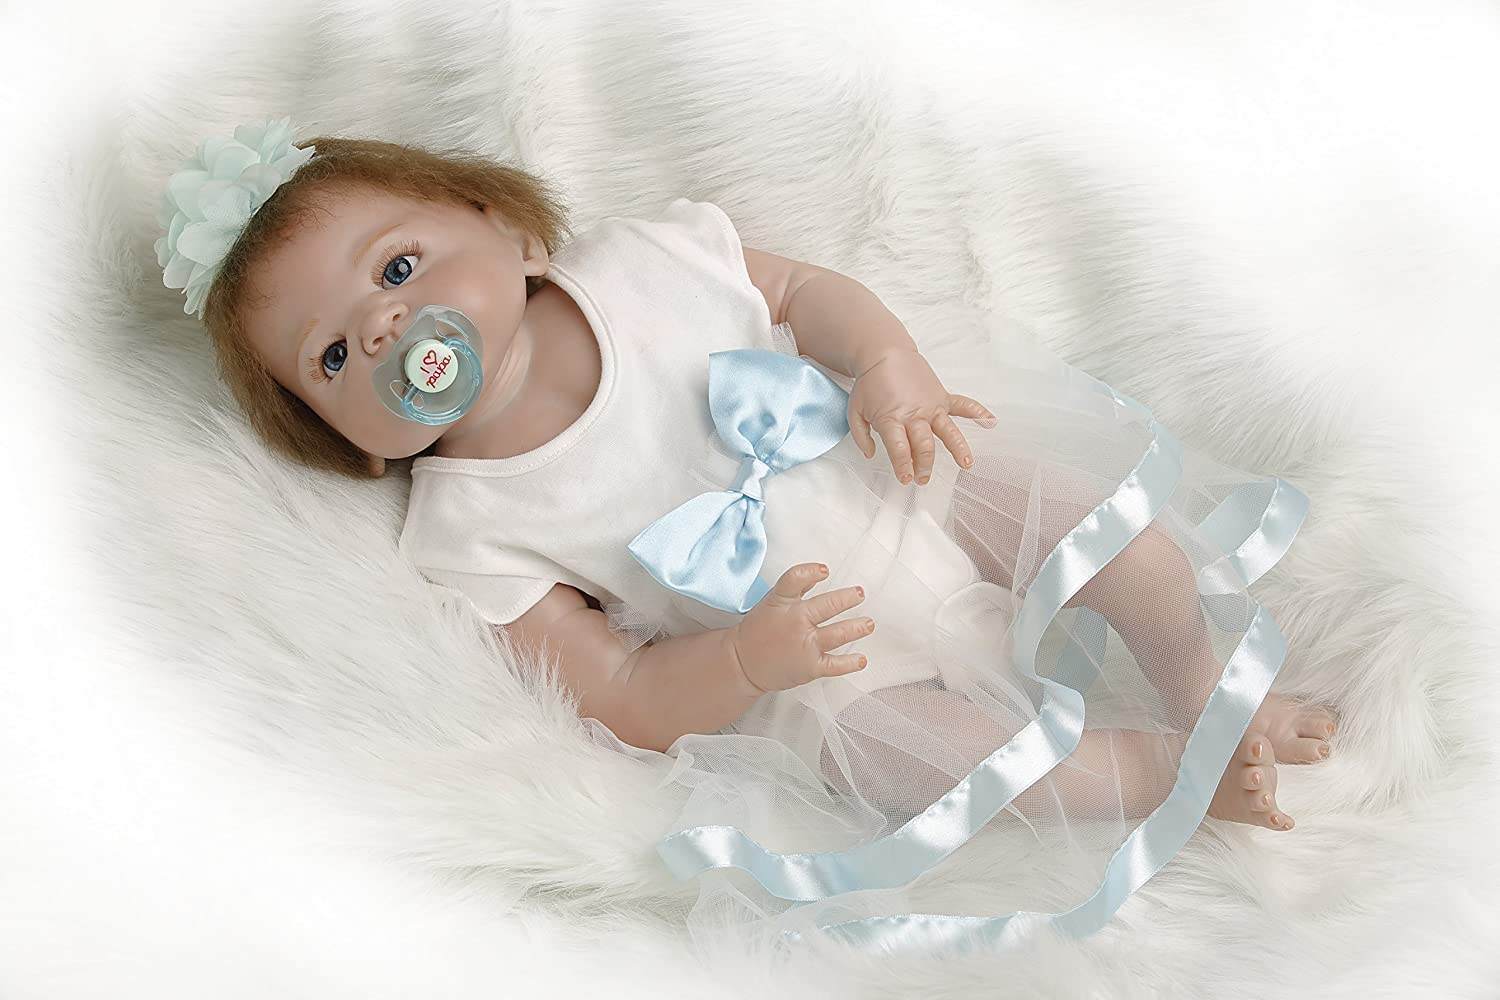 SanyDoll Rebornベビー人形ソフトSilicone 22インチ55 cm磁気Lovely Lifelike Cute Lovely Baby b0763lmqxv B0763LMQXV